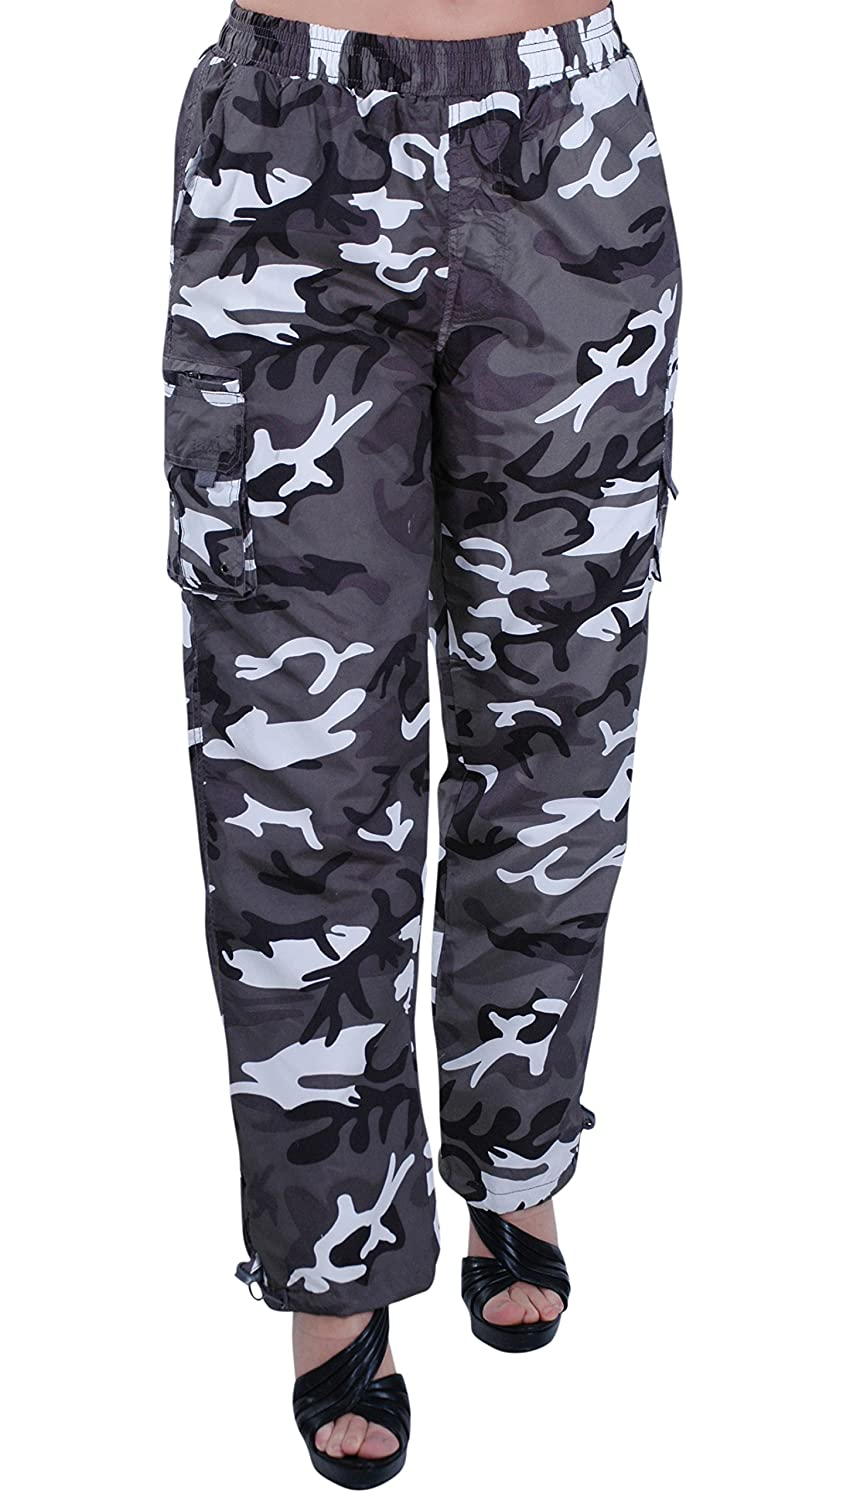 Find great deals on eBay for camo pants womens. Shop with confidence.